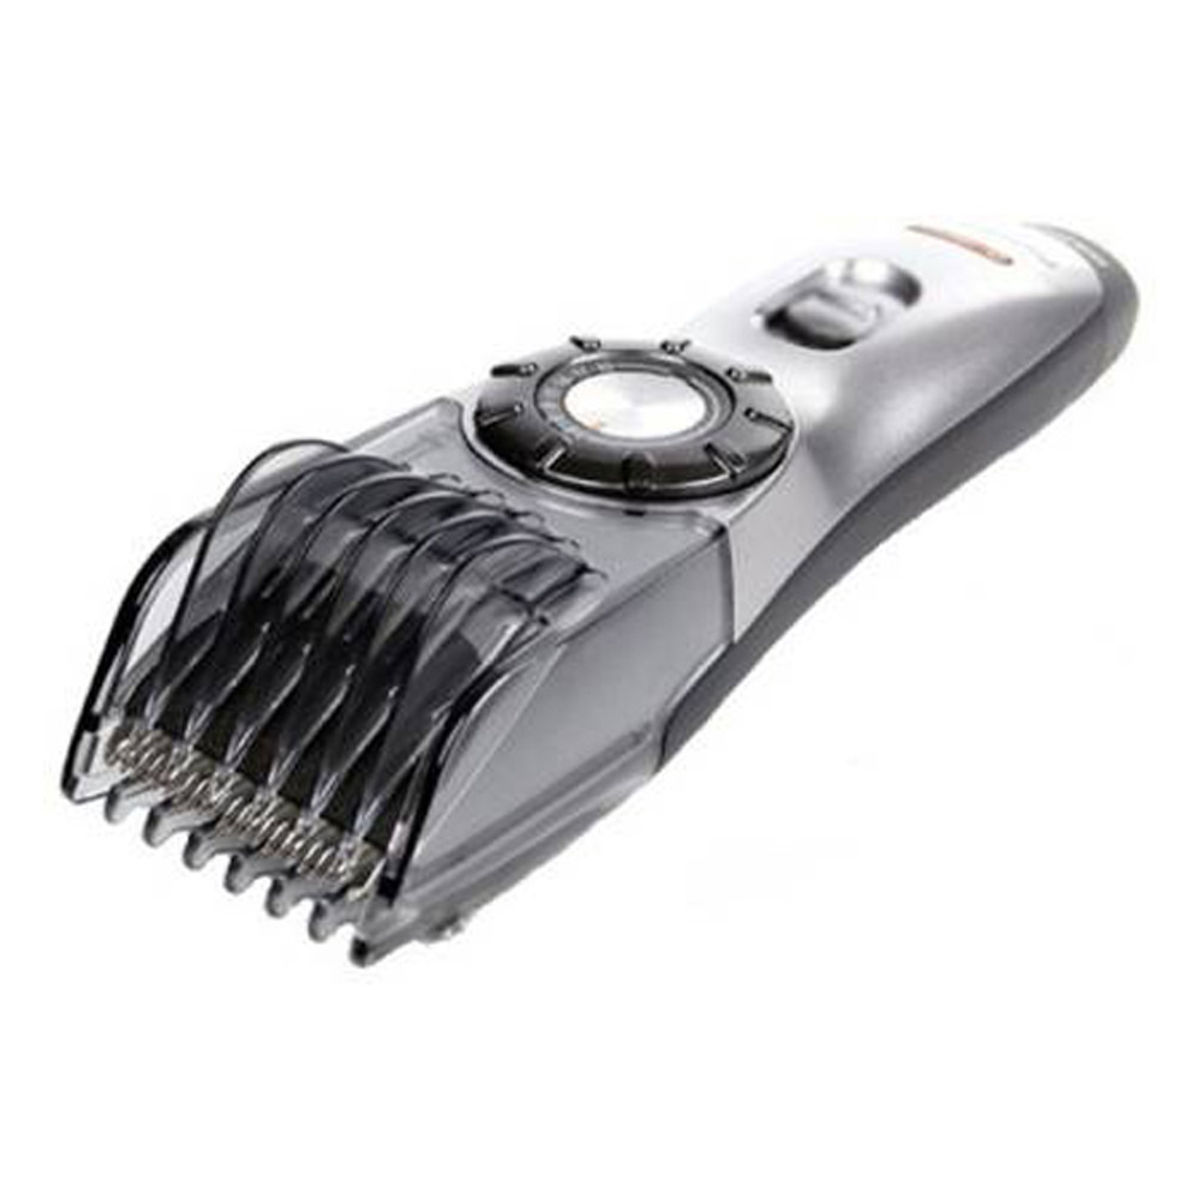 Panasonic Special Edition Trimmer ER217S Trimmer